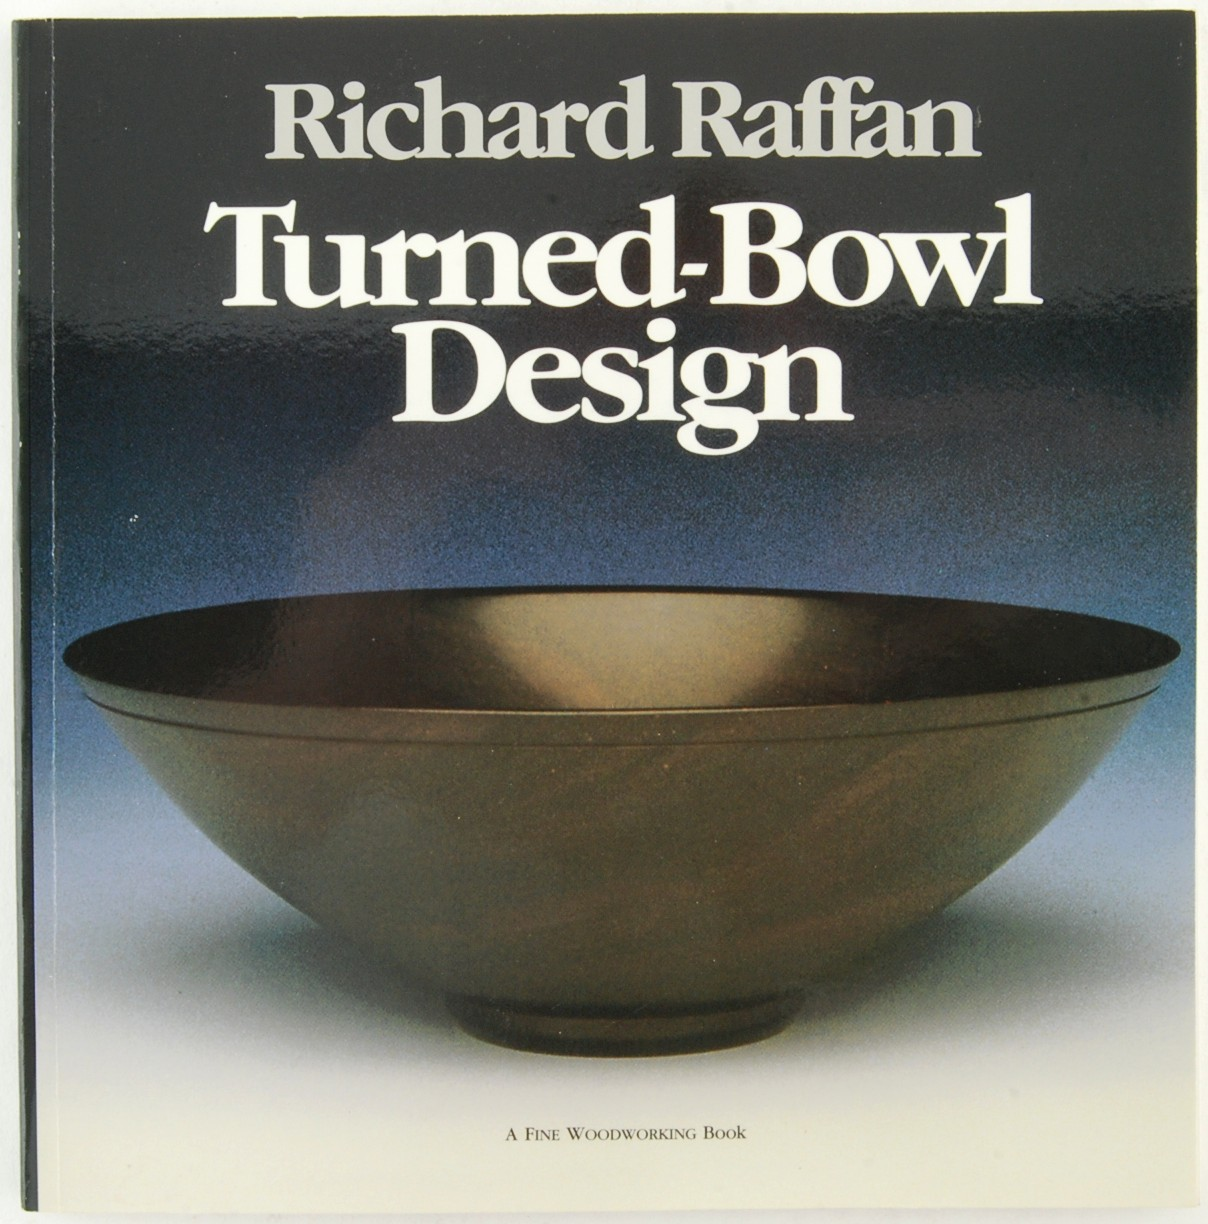 Book turned bowl design